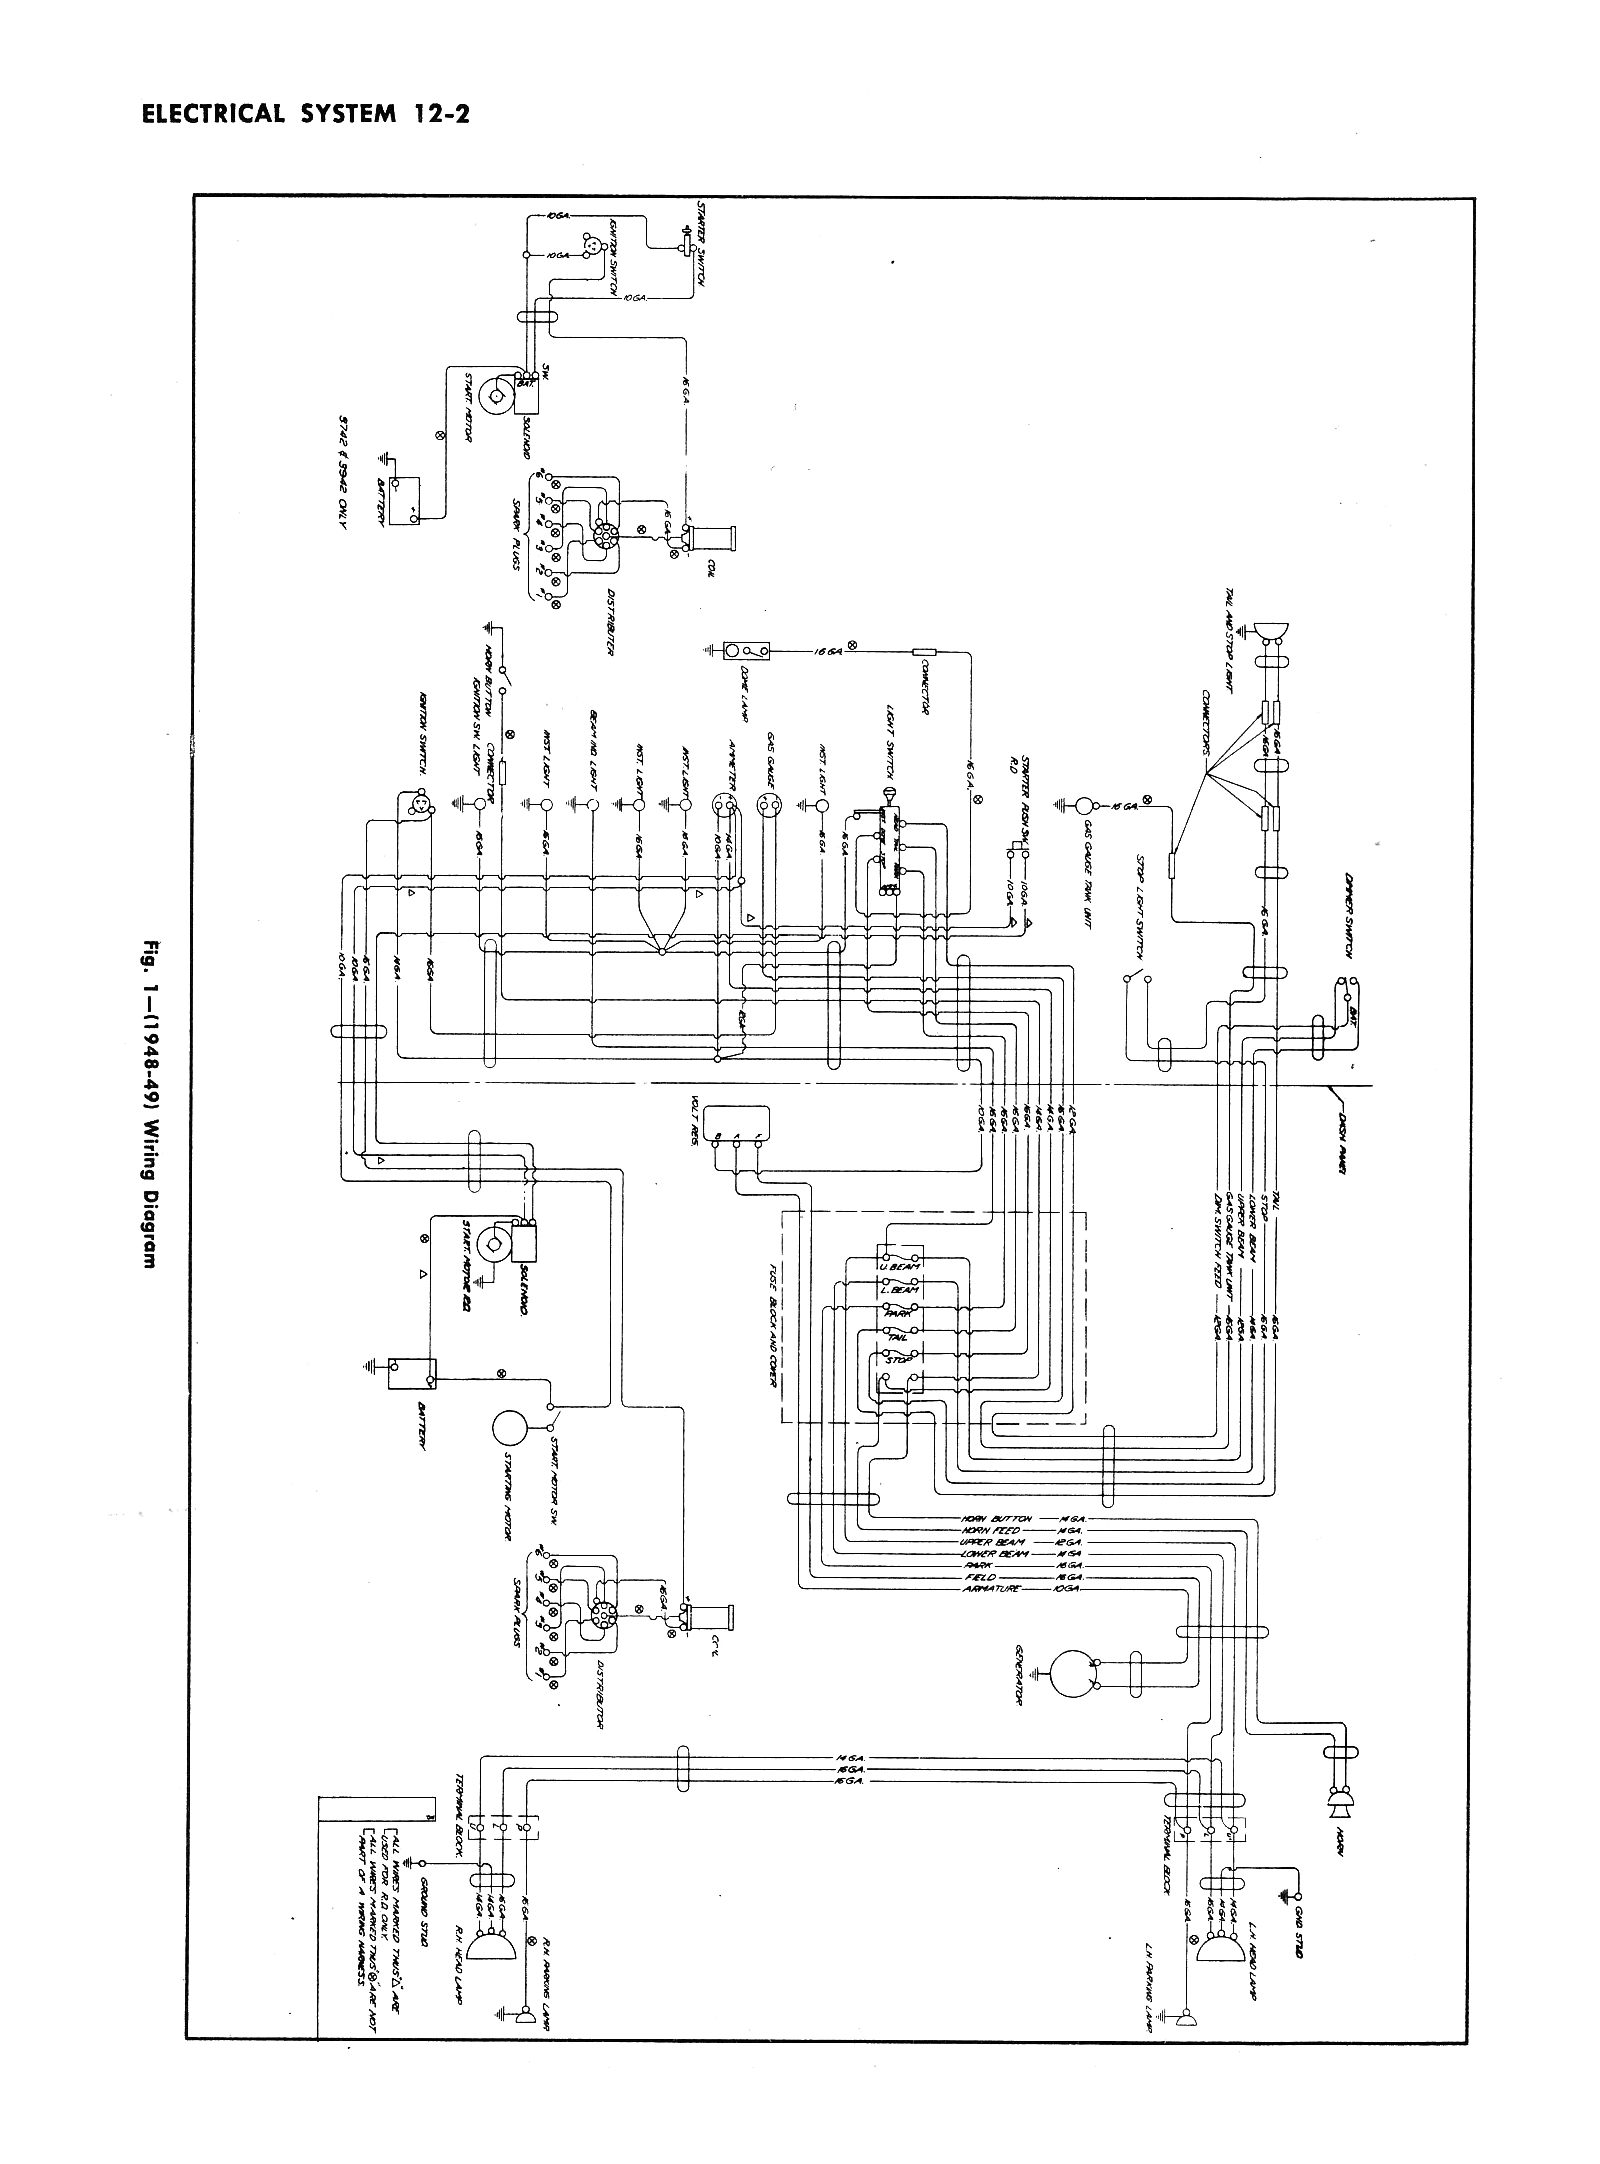 1949 Chrysler Wiring Diagram Not Lossing Symbols Simple Schema Rh 10 Lodge Finder De Automotive Town And Country